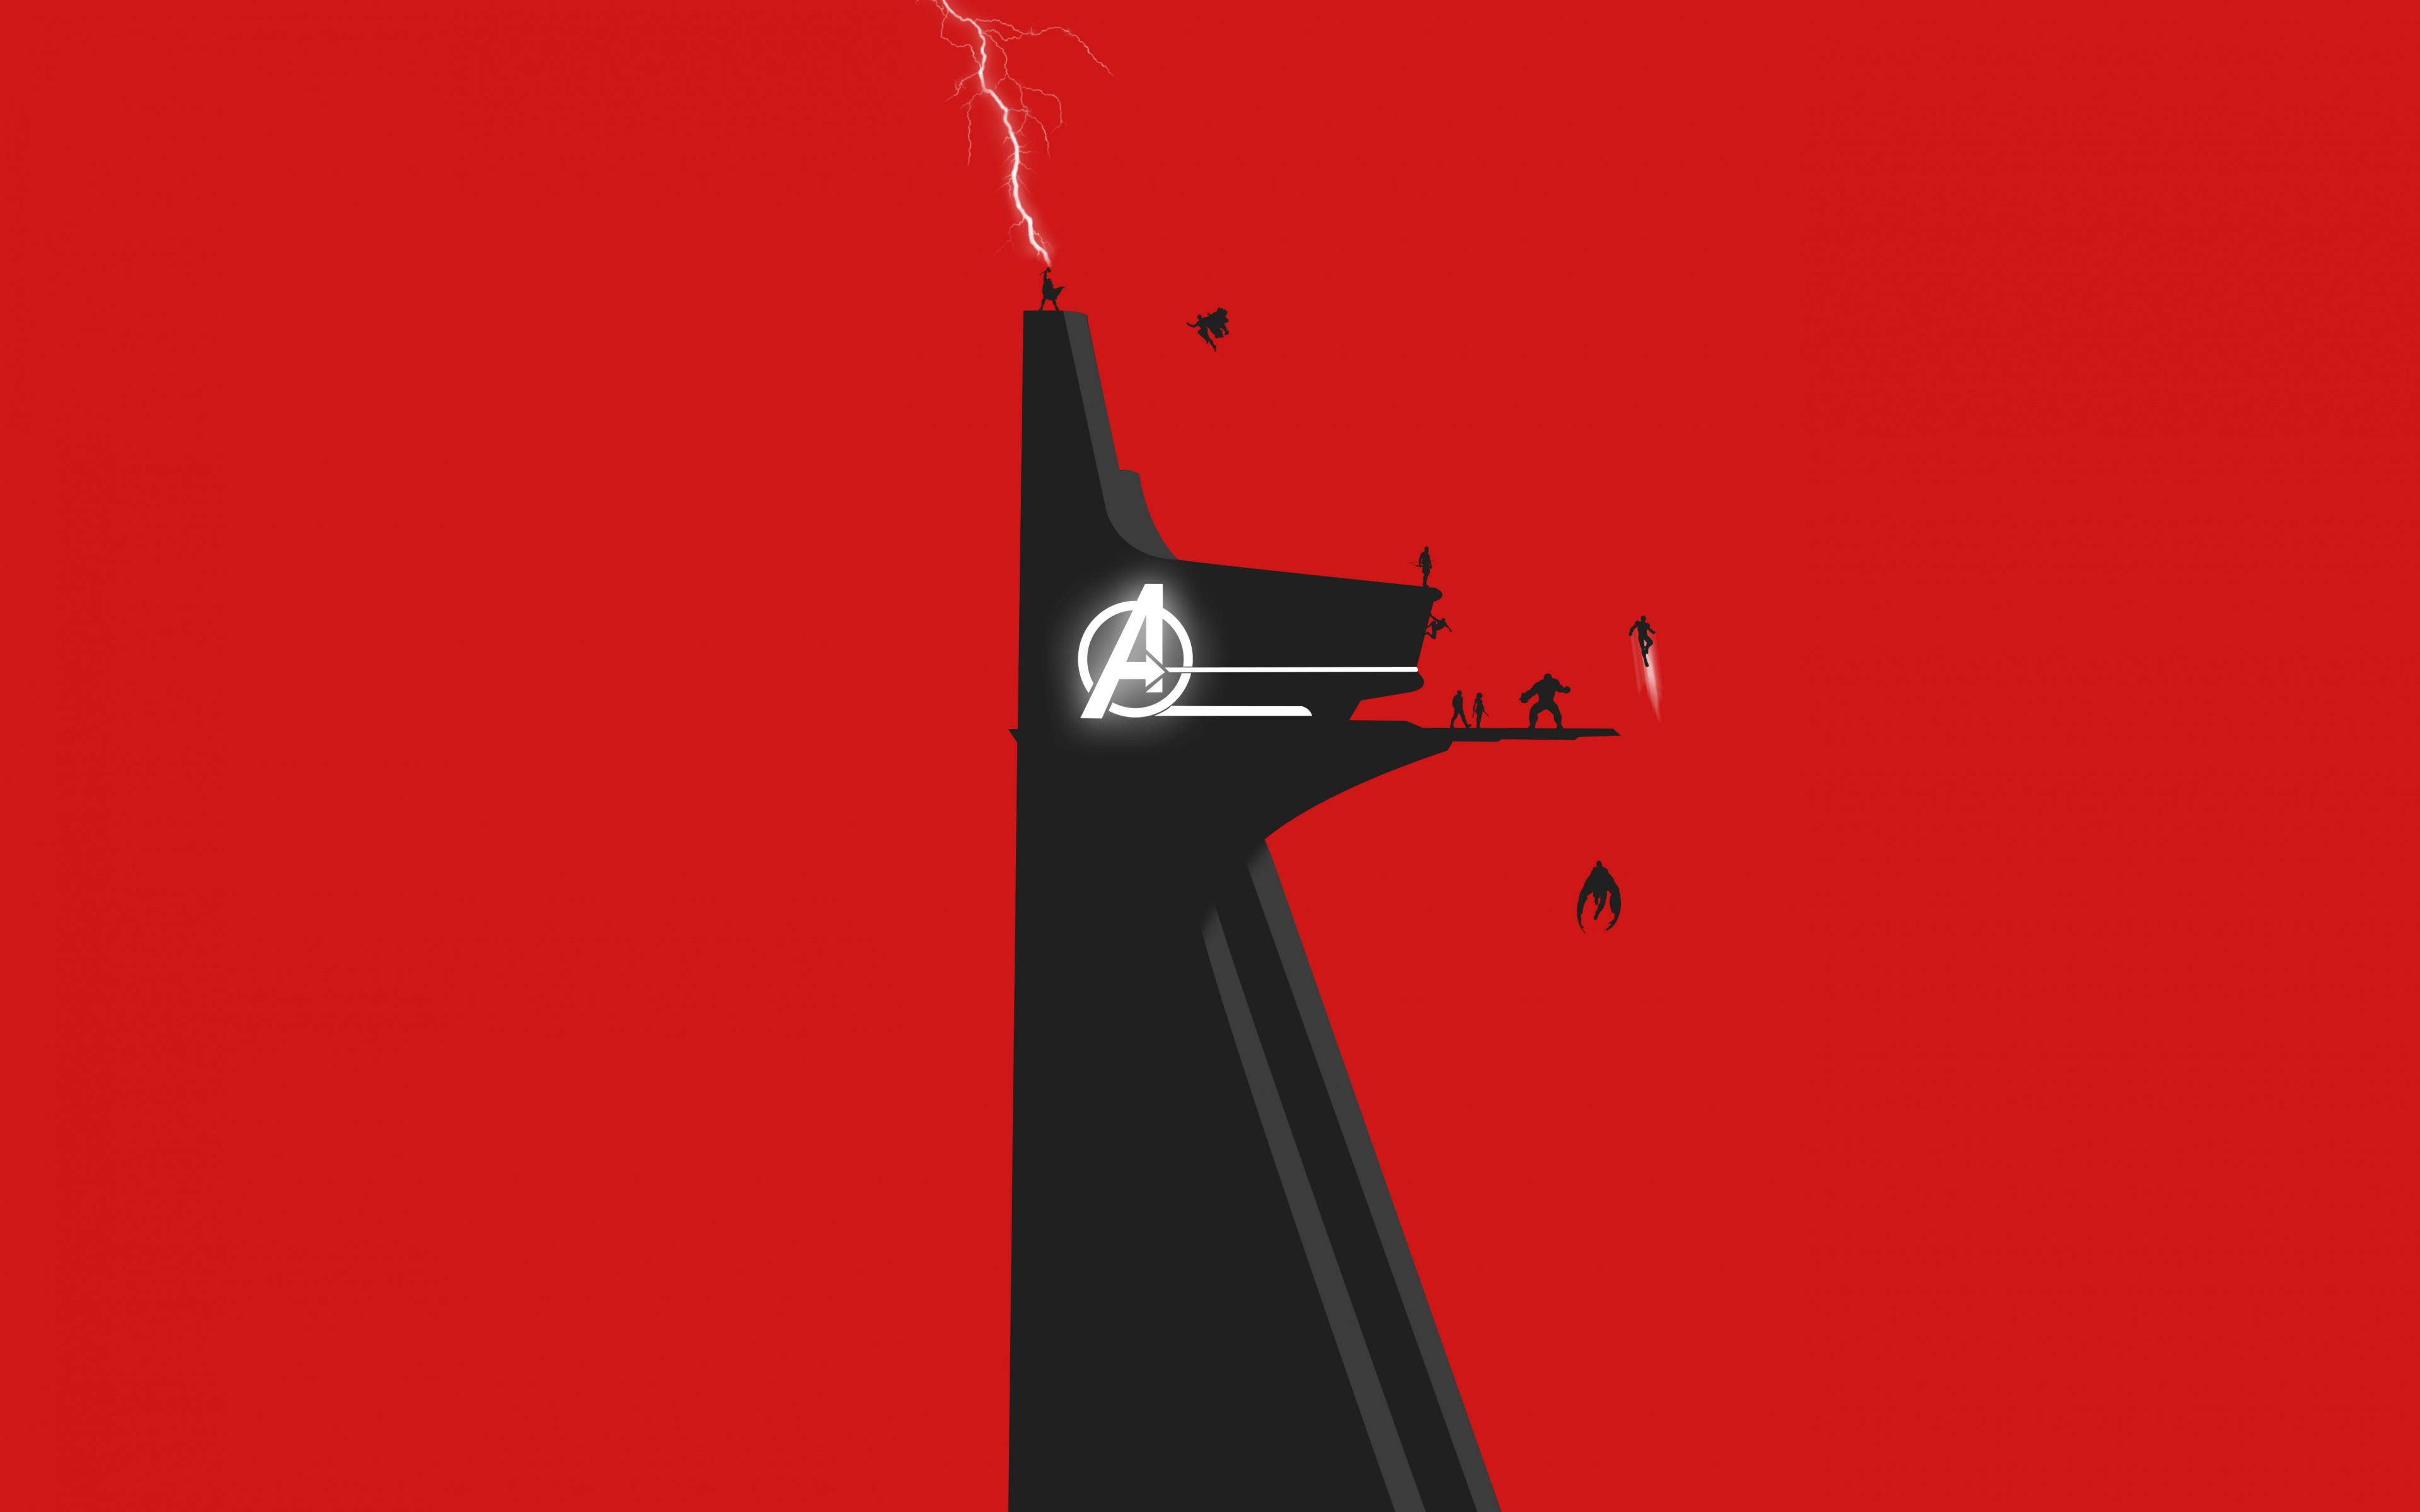 Ultra Hd Avengers Minimalist Wallpaper